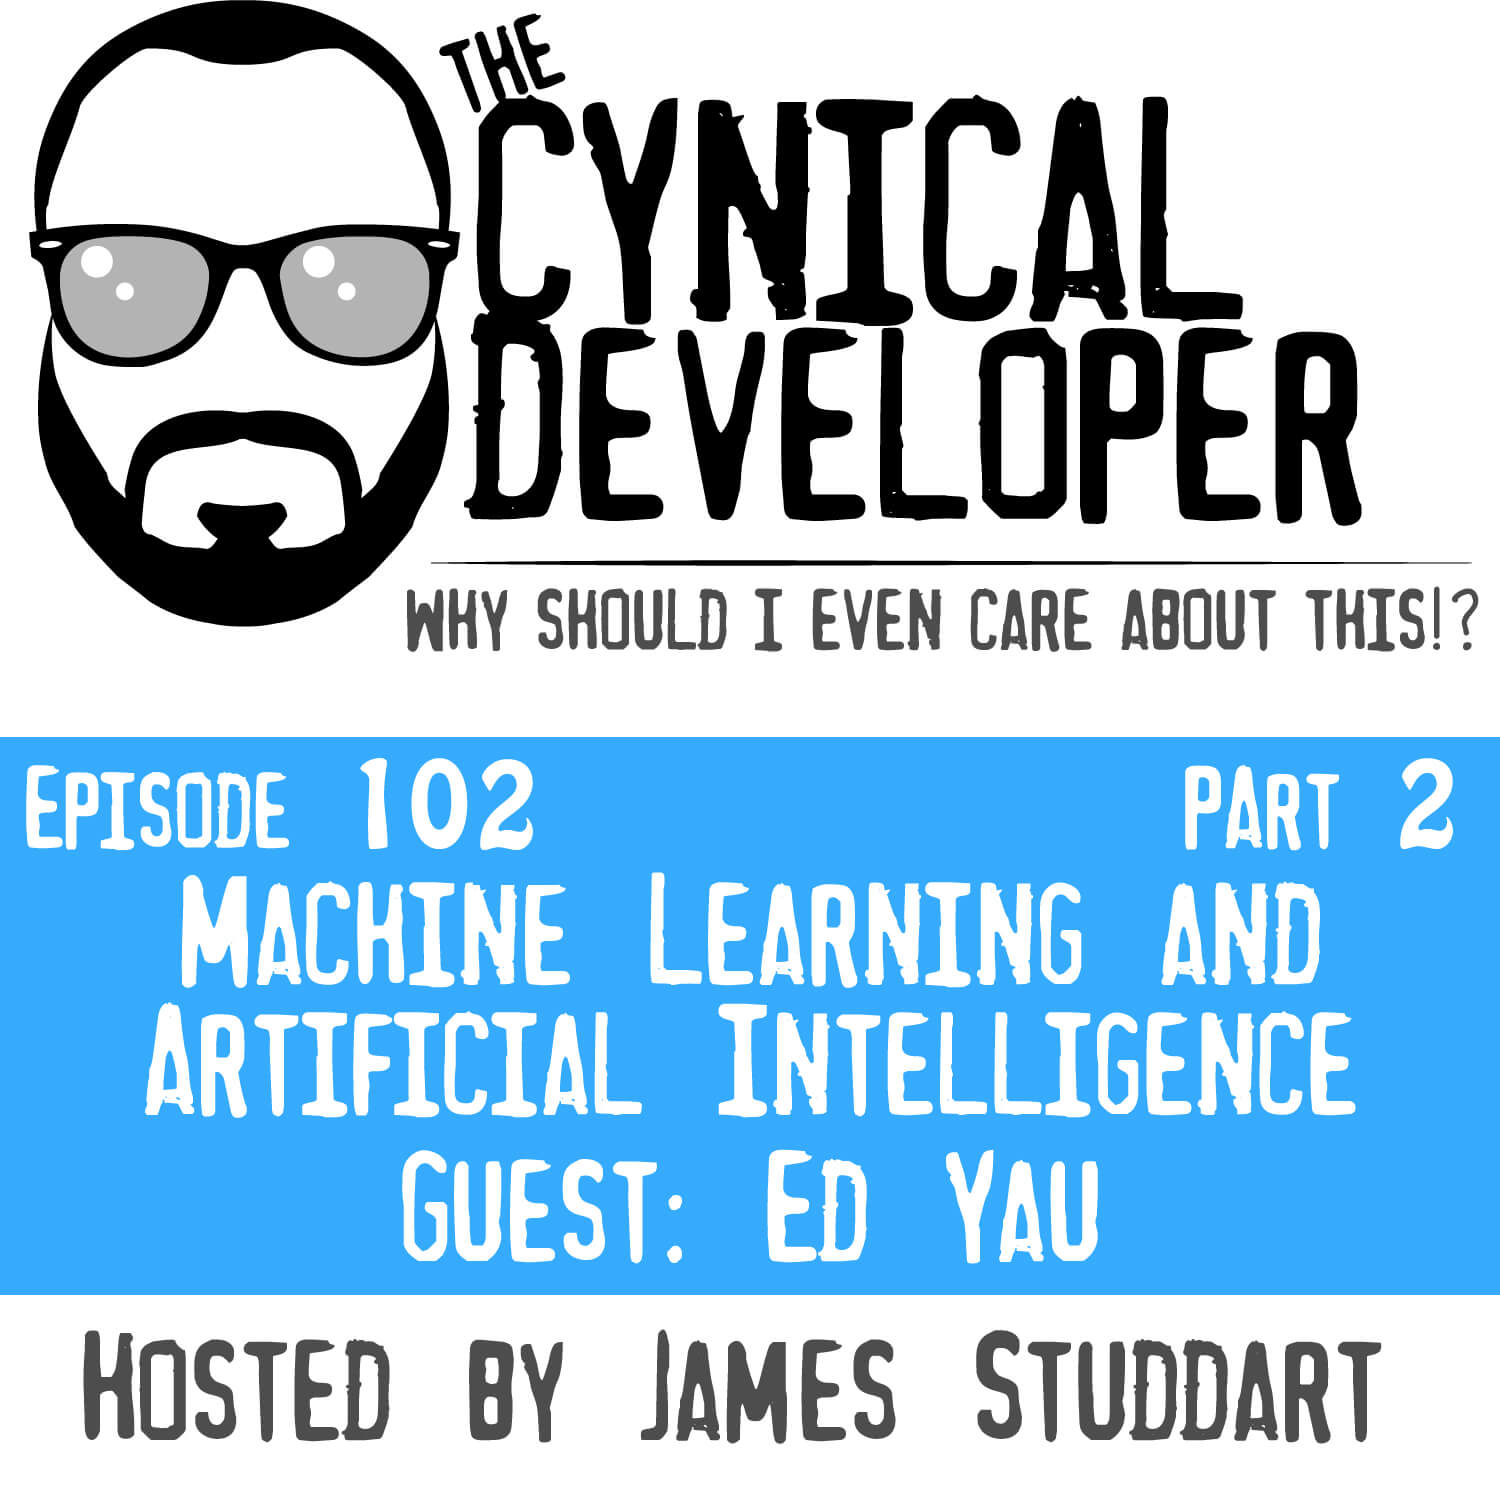 Episode 102 - Machine Learning and Artificial Intelligence (Part 2)